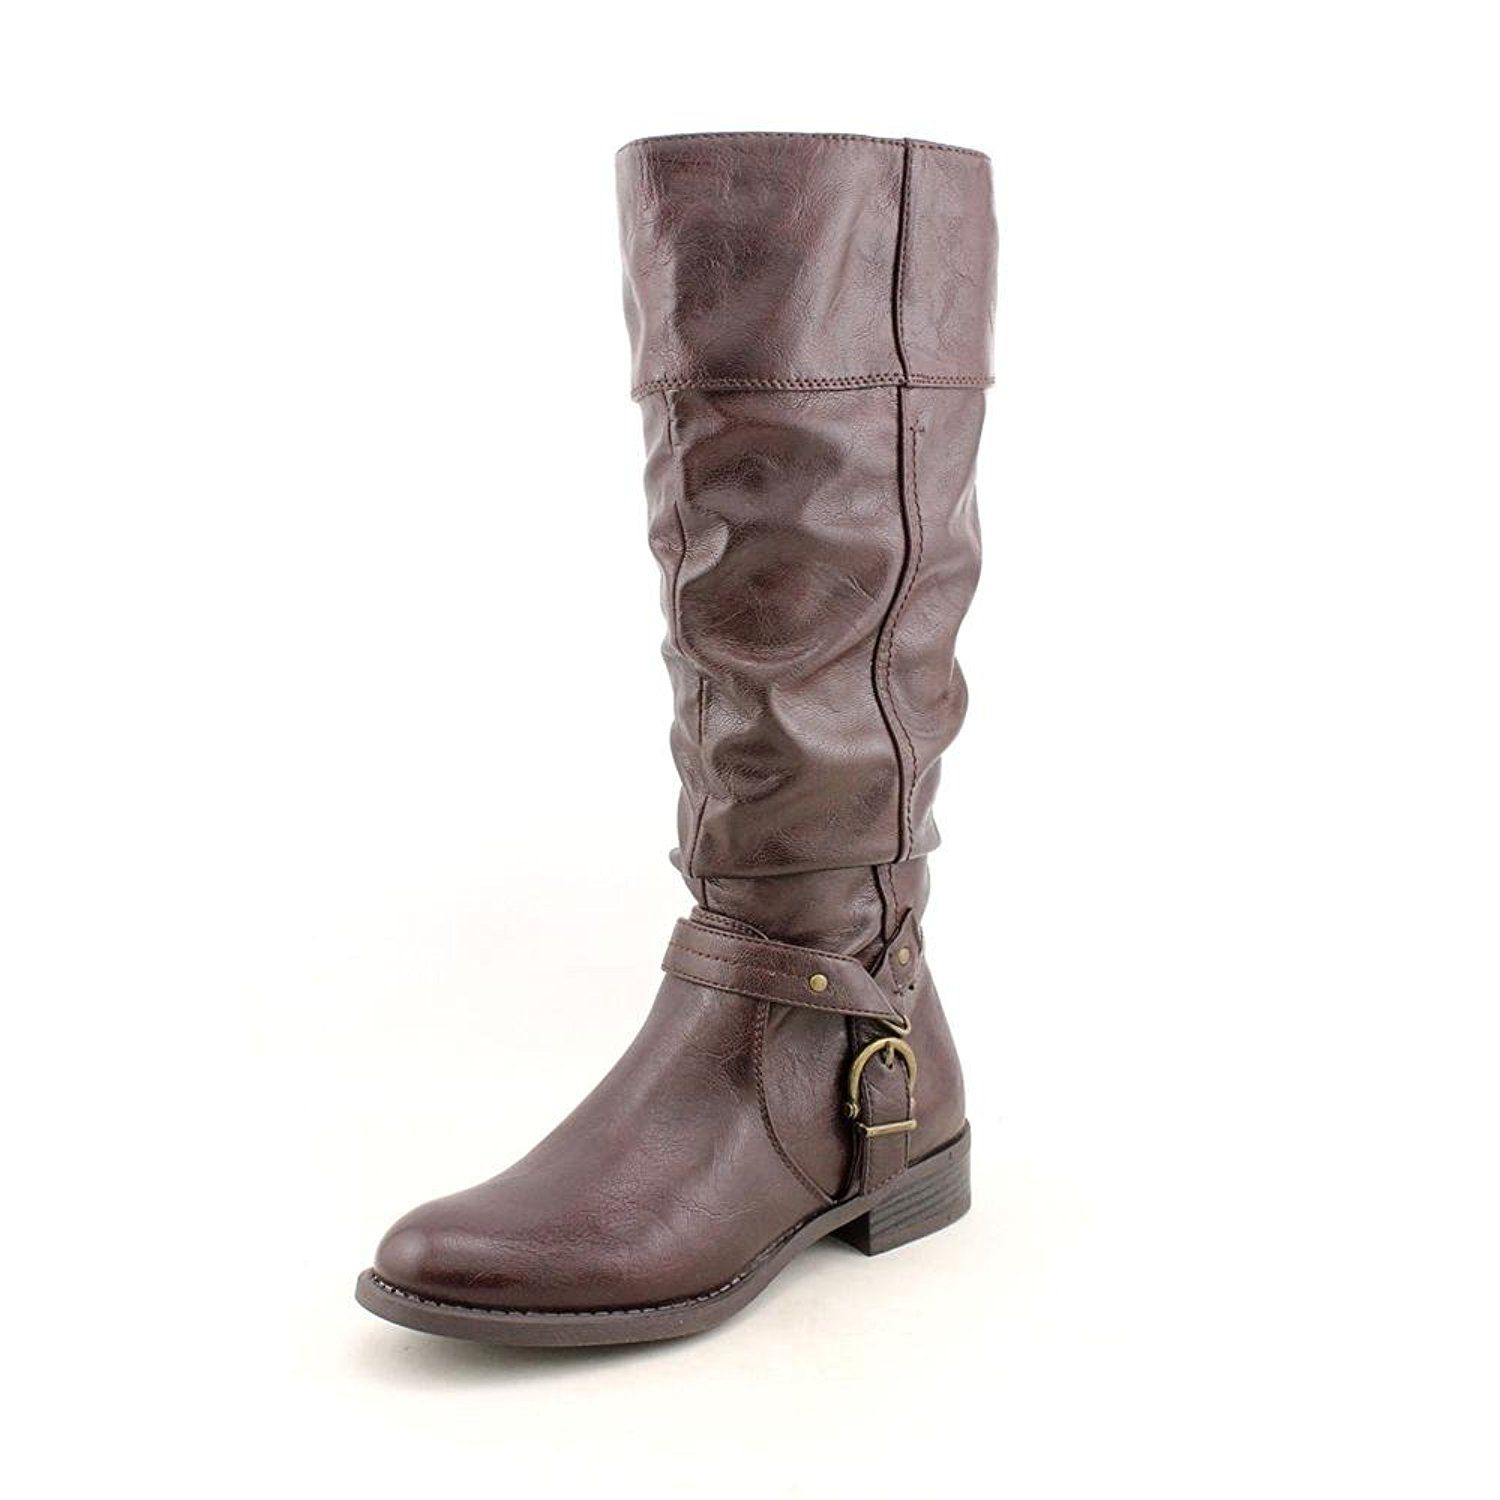 adb2c00efe7ad White Mountain Lefty Womens Size 11 Brown Fashion Knee-High Boots ...